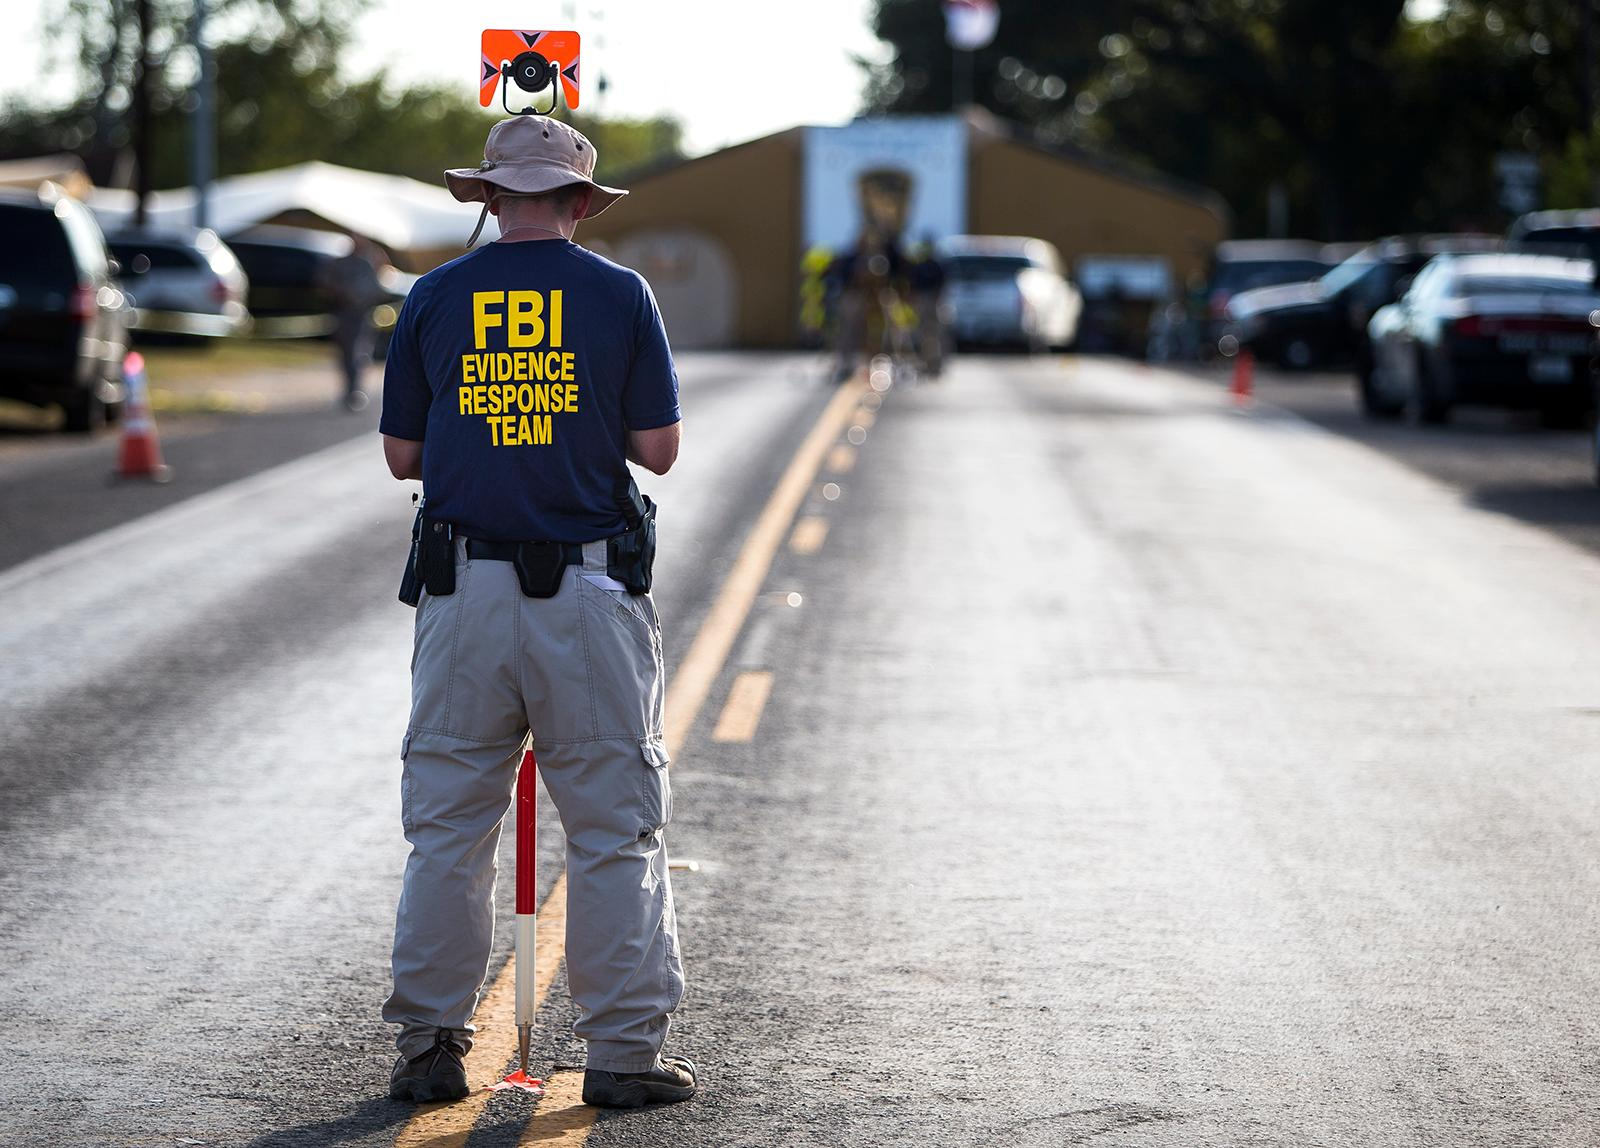 A member of the FBI's Evidence Response Team works on the crime scene of the mass shooting at the First Baptist Church in Sutherland Springs, Texas on Monday, Nov. 6, 2017. (Nick Wagner/Austin American-Statesman via AP)